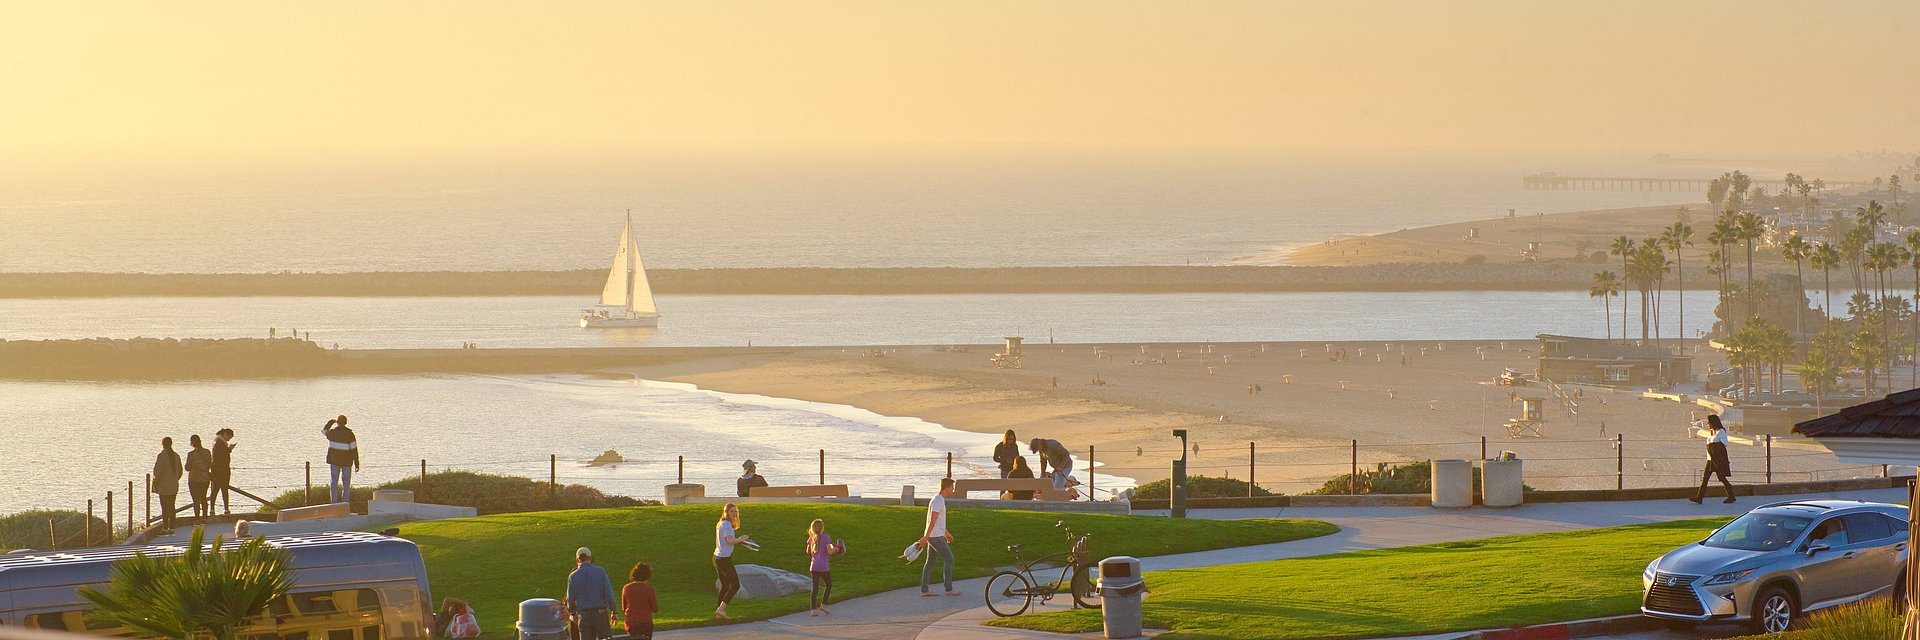 Coldwell Banker Residential Brokerage Lists Corona Del Mar Property for $6.85 Million